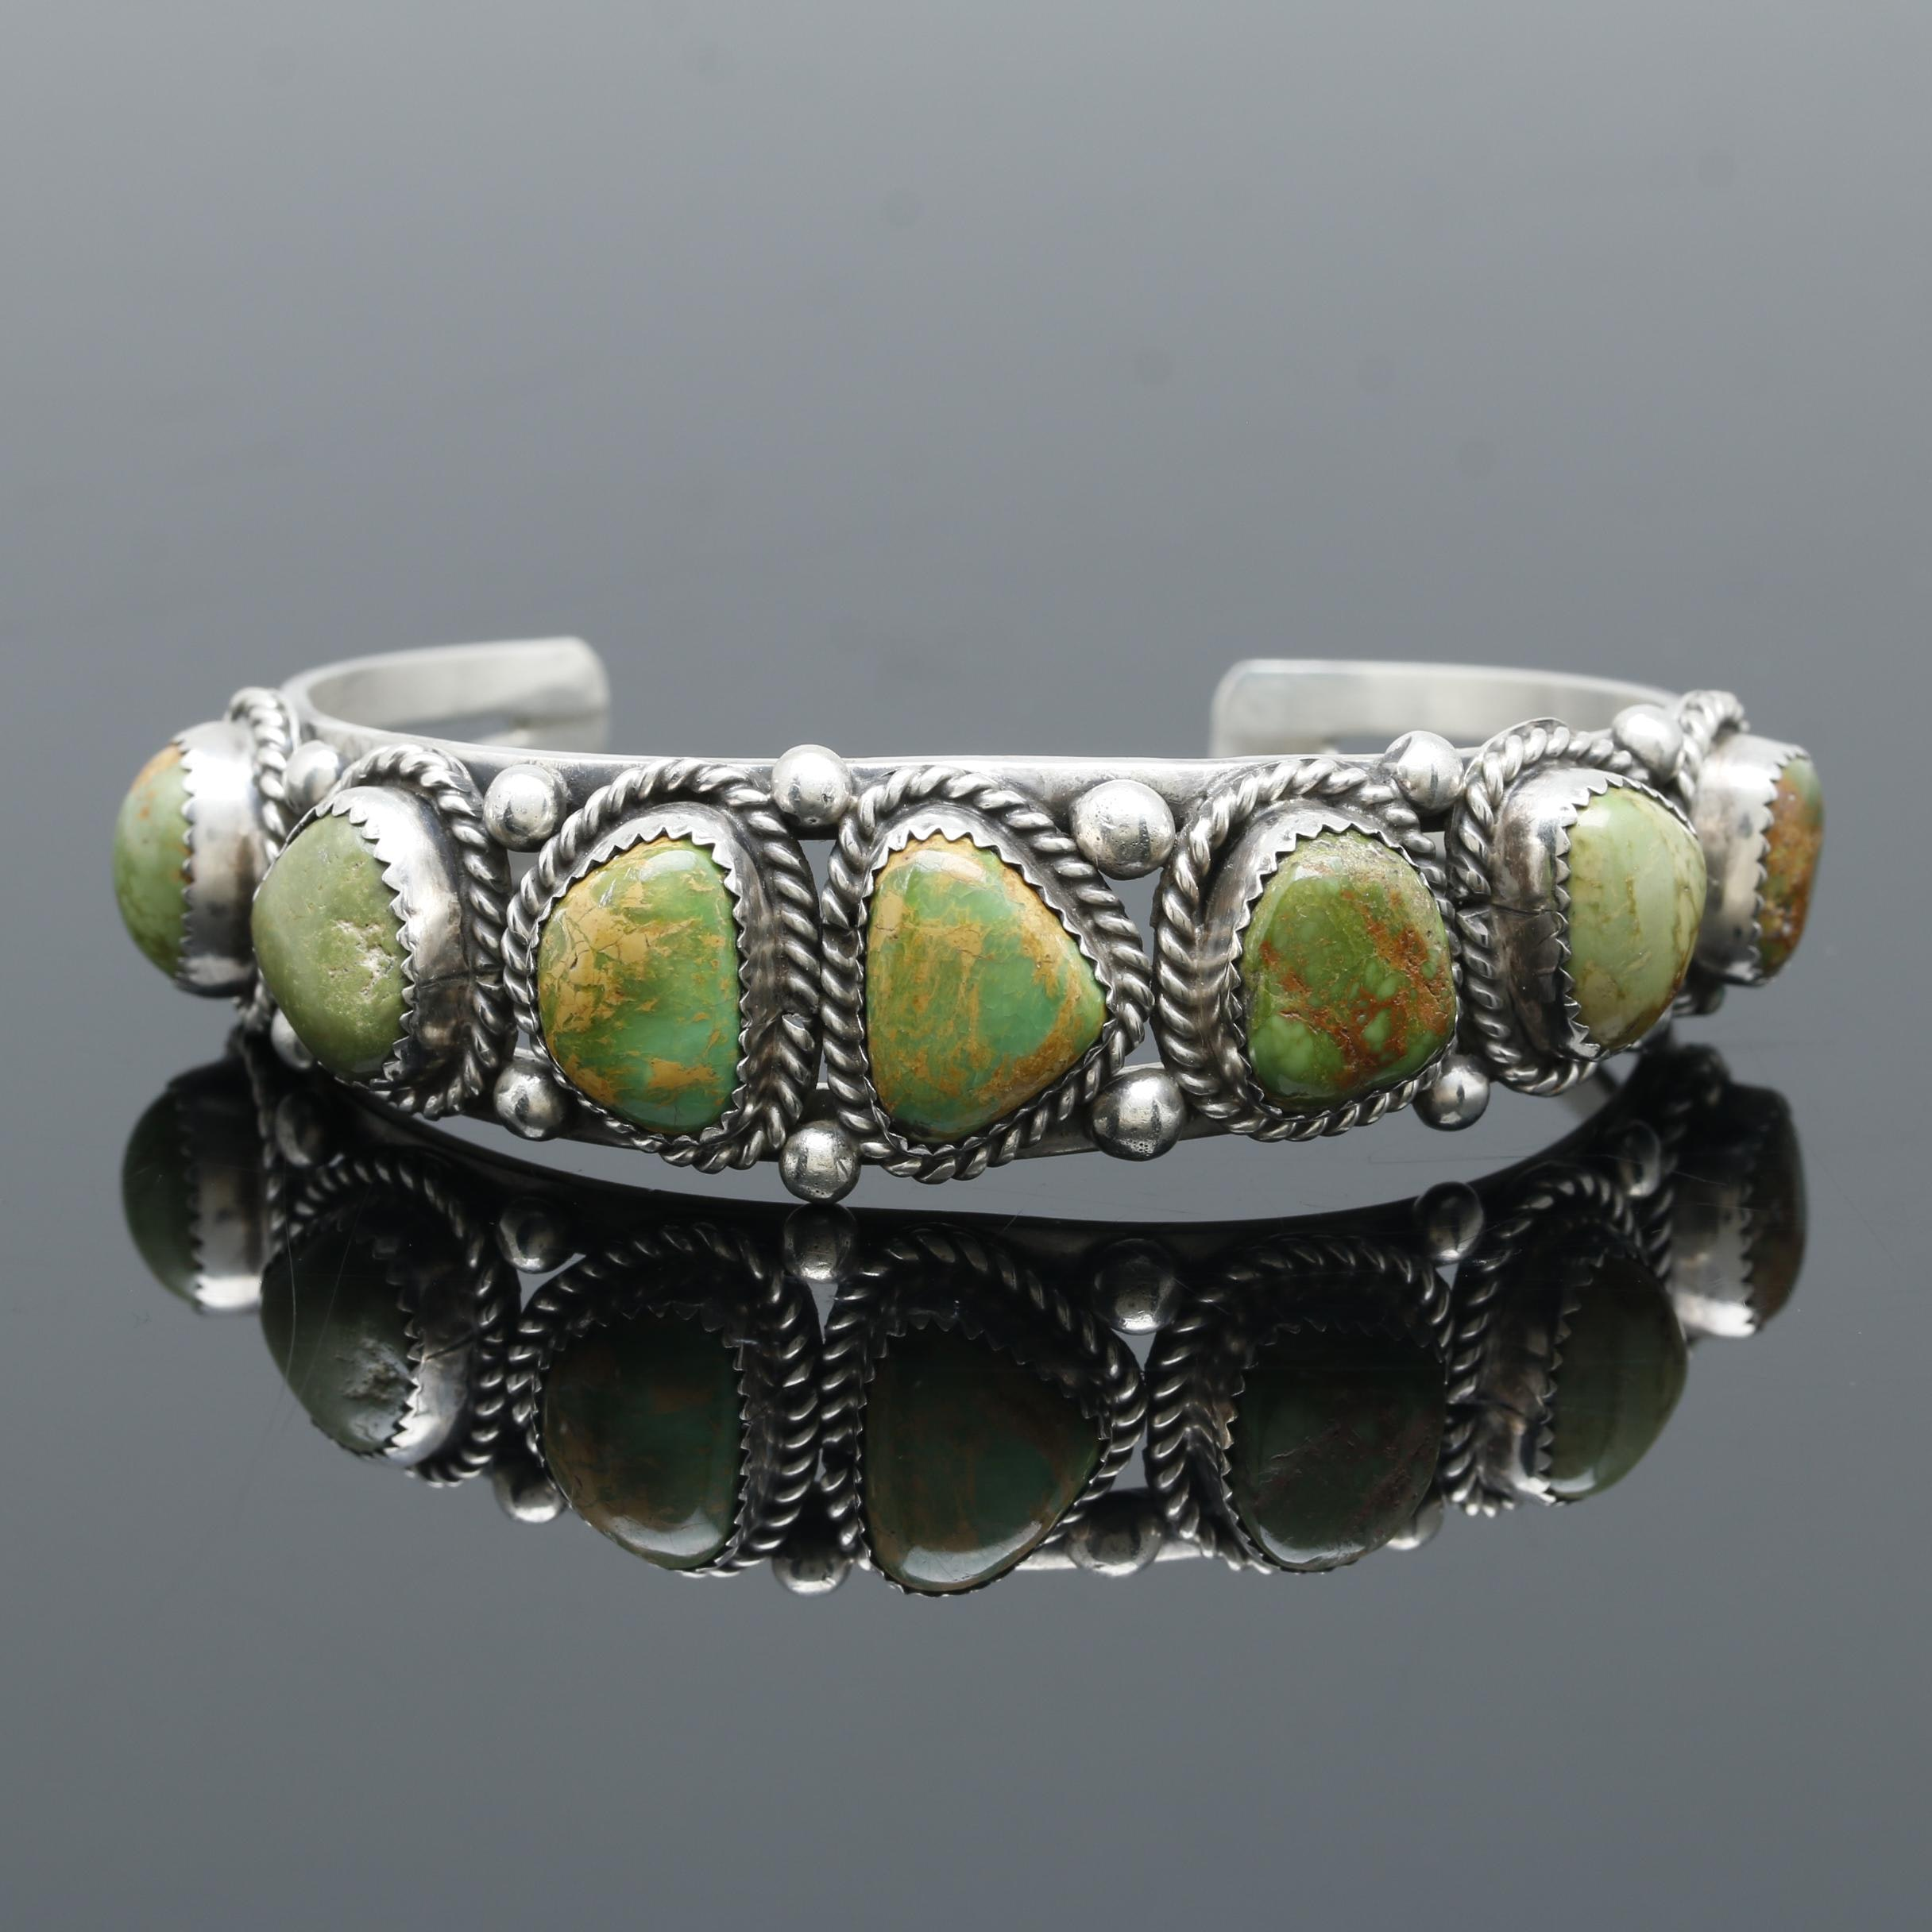 Lennie Mariano Navajo Diné Sterling Silver Green Turquoise Cuff